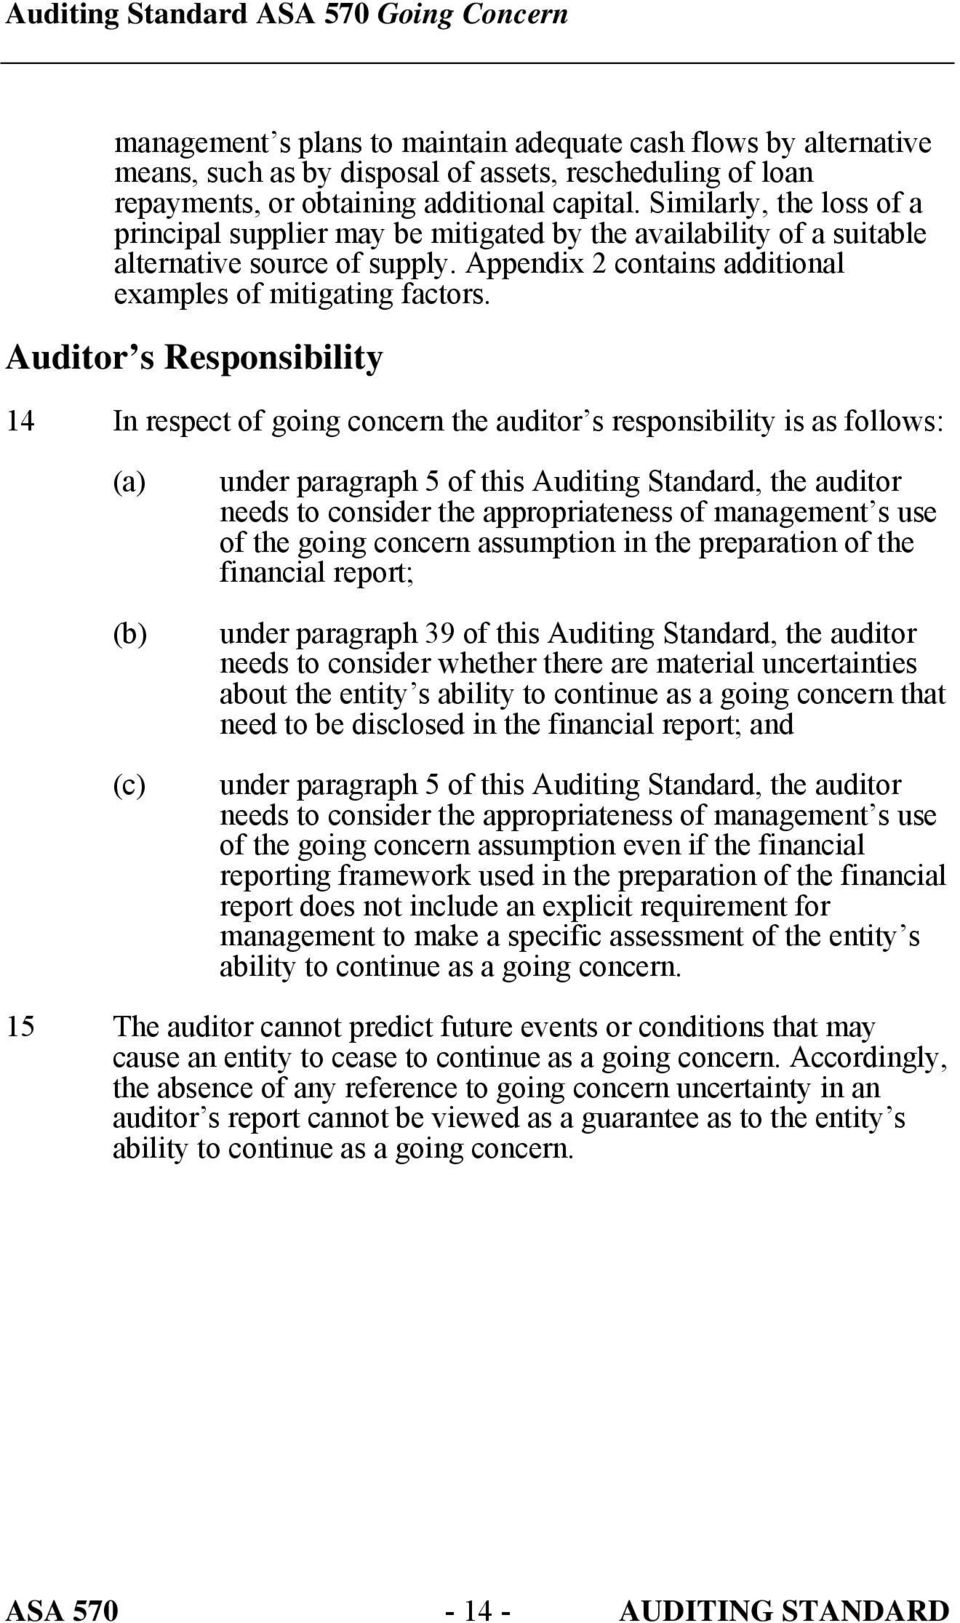 Auditor s Responsibility 14 In respect of going concern the auditor s responsibility is as follows: (c) under paragraph 5 of this Auditing Standard, the auditor needs to consider the appropriateness